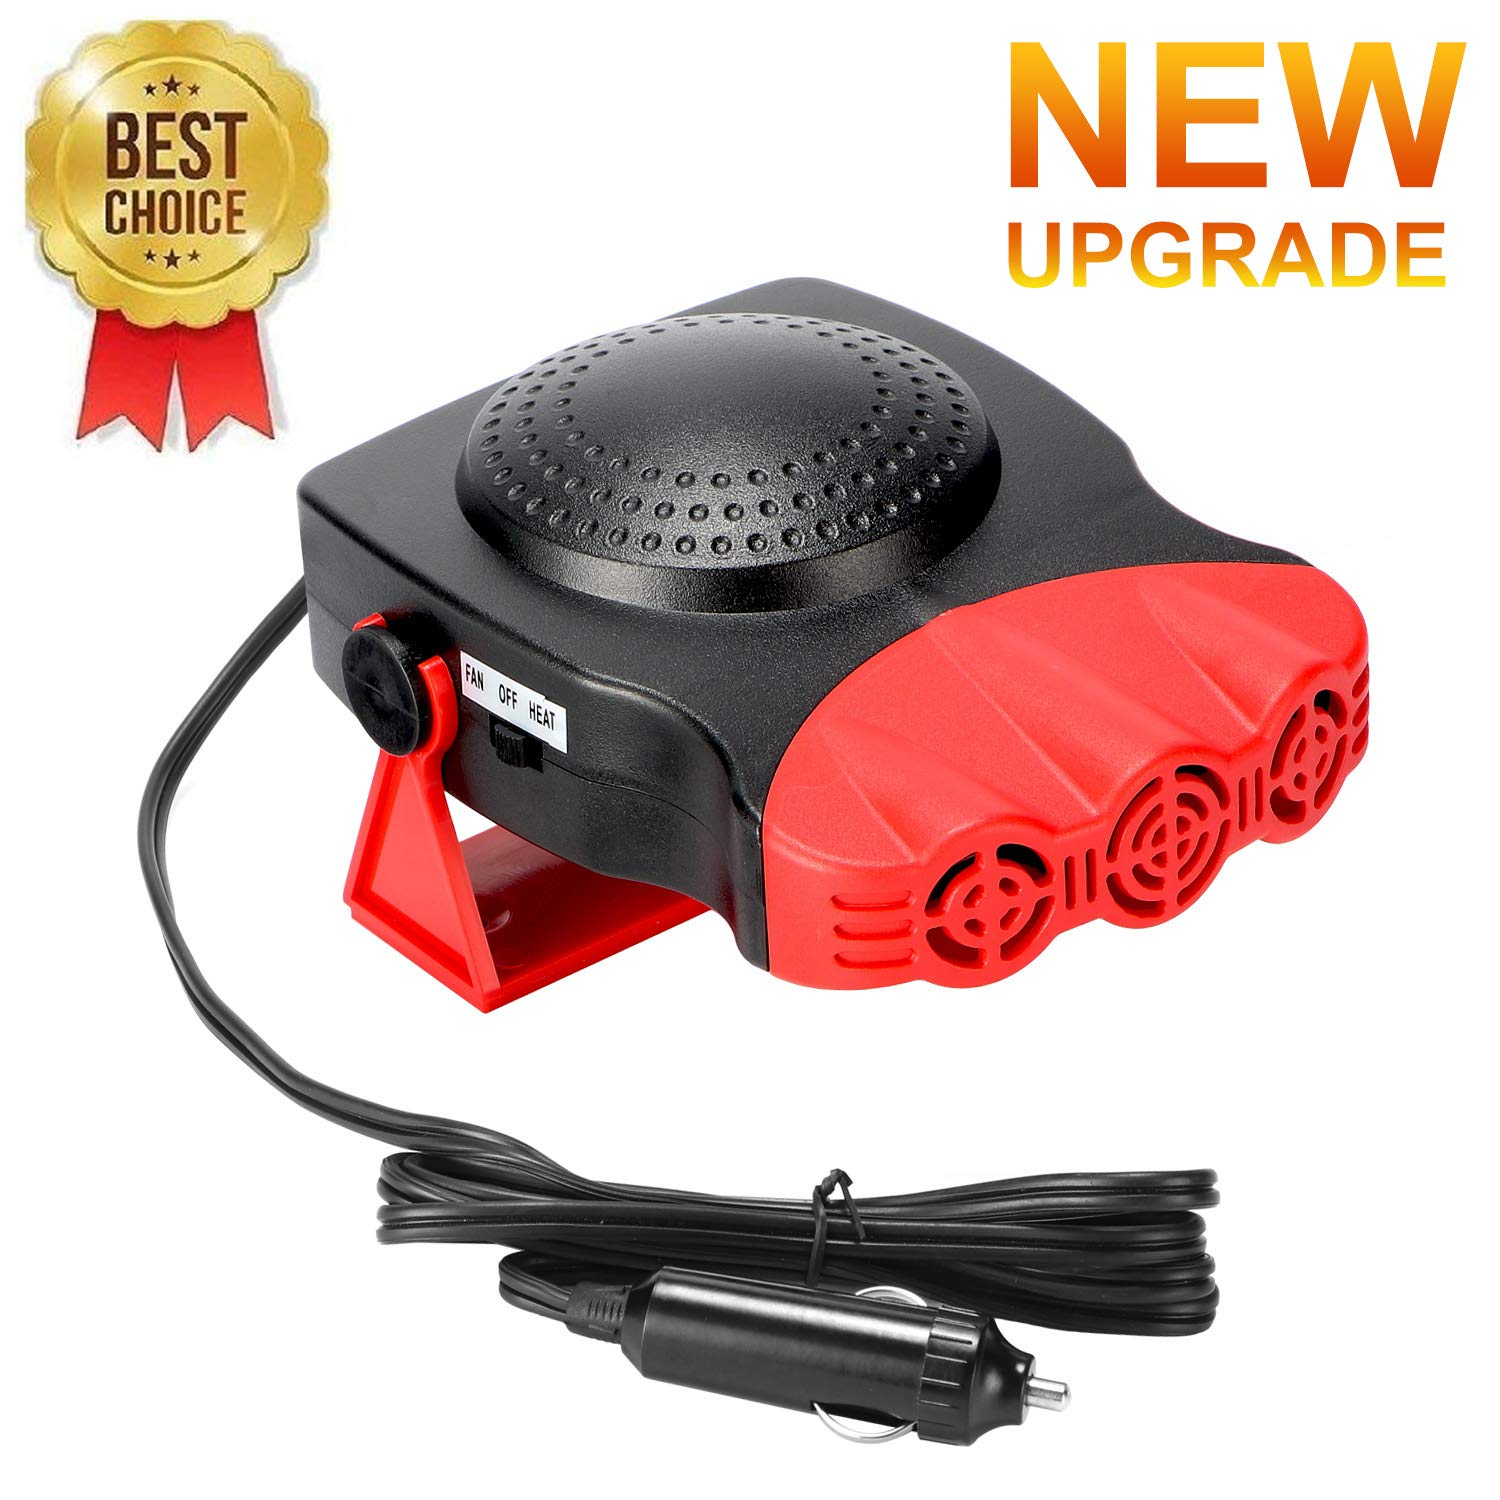 Portable Car Heater,Car Heater That Plugs into Cigarette Lighter Car Defroster Car Defogger 150W 12 Volt Heater for Automobile Heating/Cooling 2 in i Function 3-Outlet